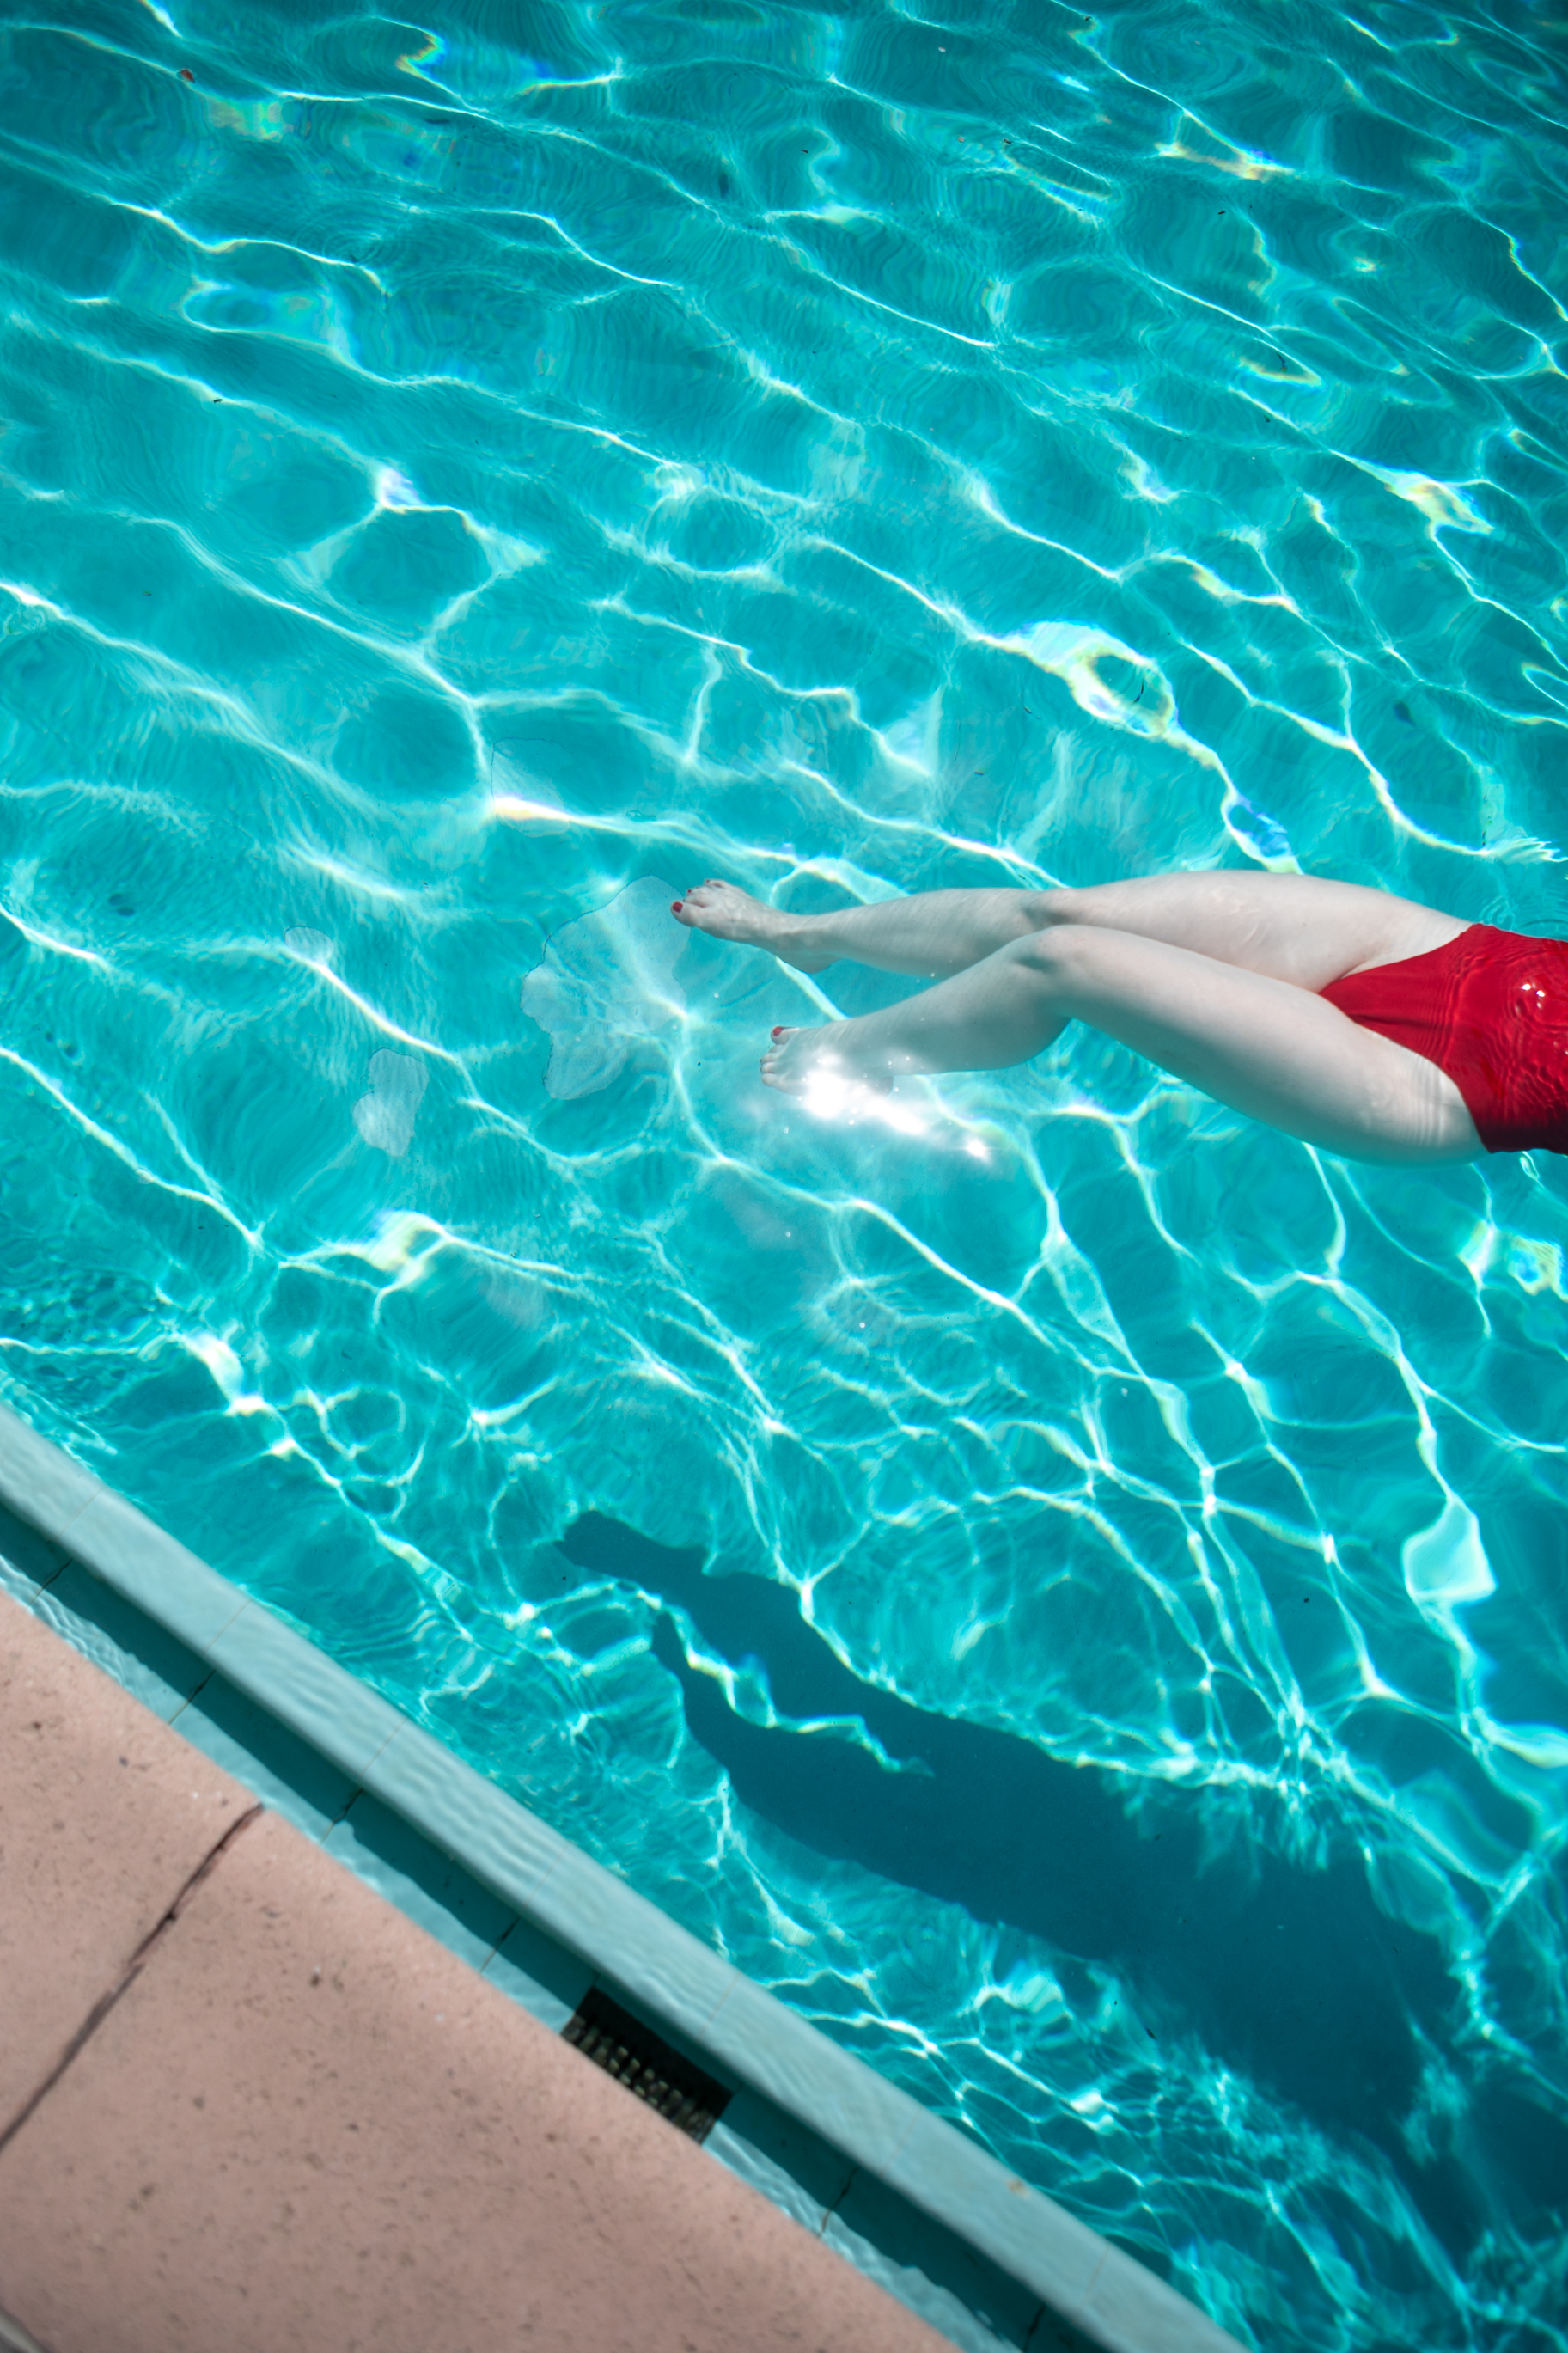 Red Bathing suit in pool, Silverlake, LA California. Photograph by Sarah Natsumi Moore